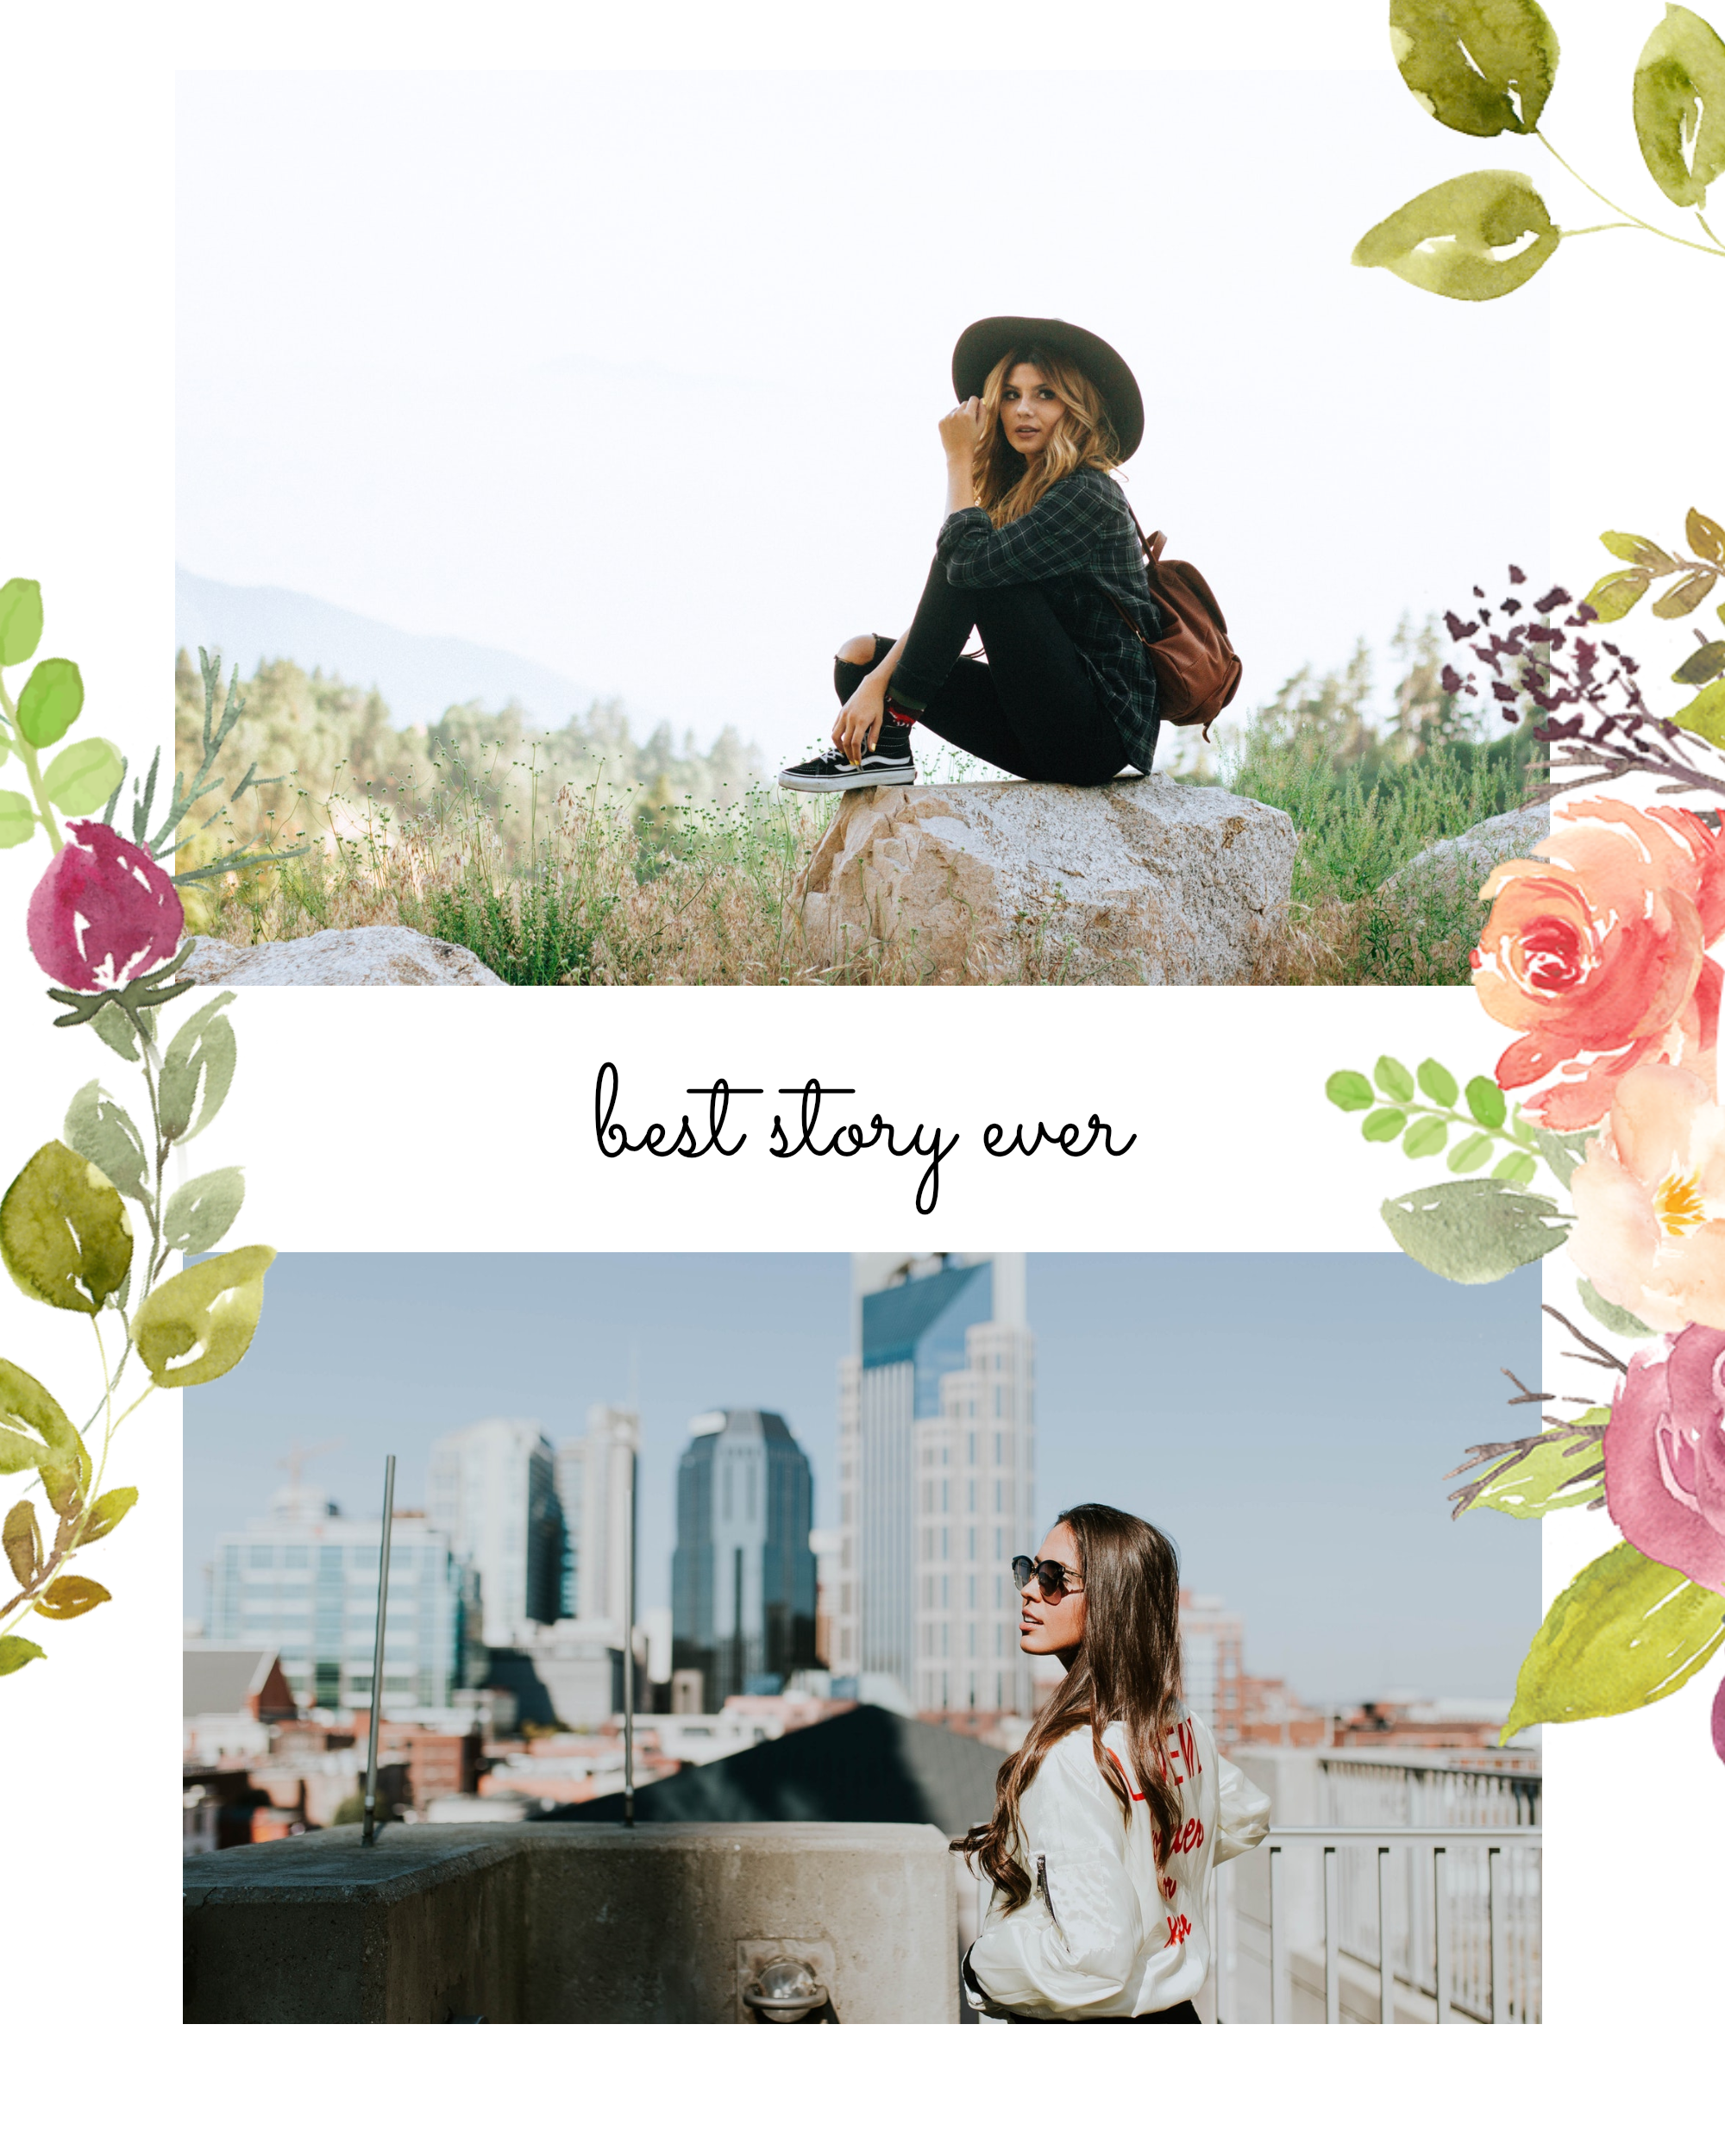 #pastelflowers post collection - best story ever Instagram Post Template